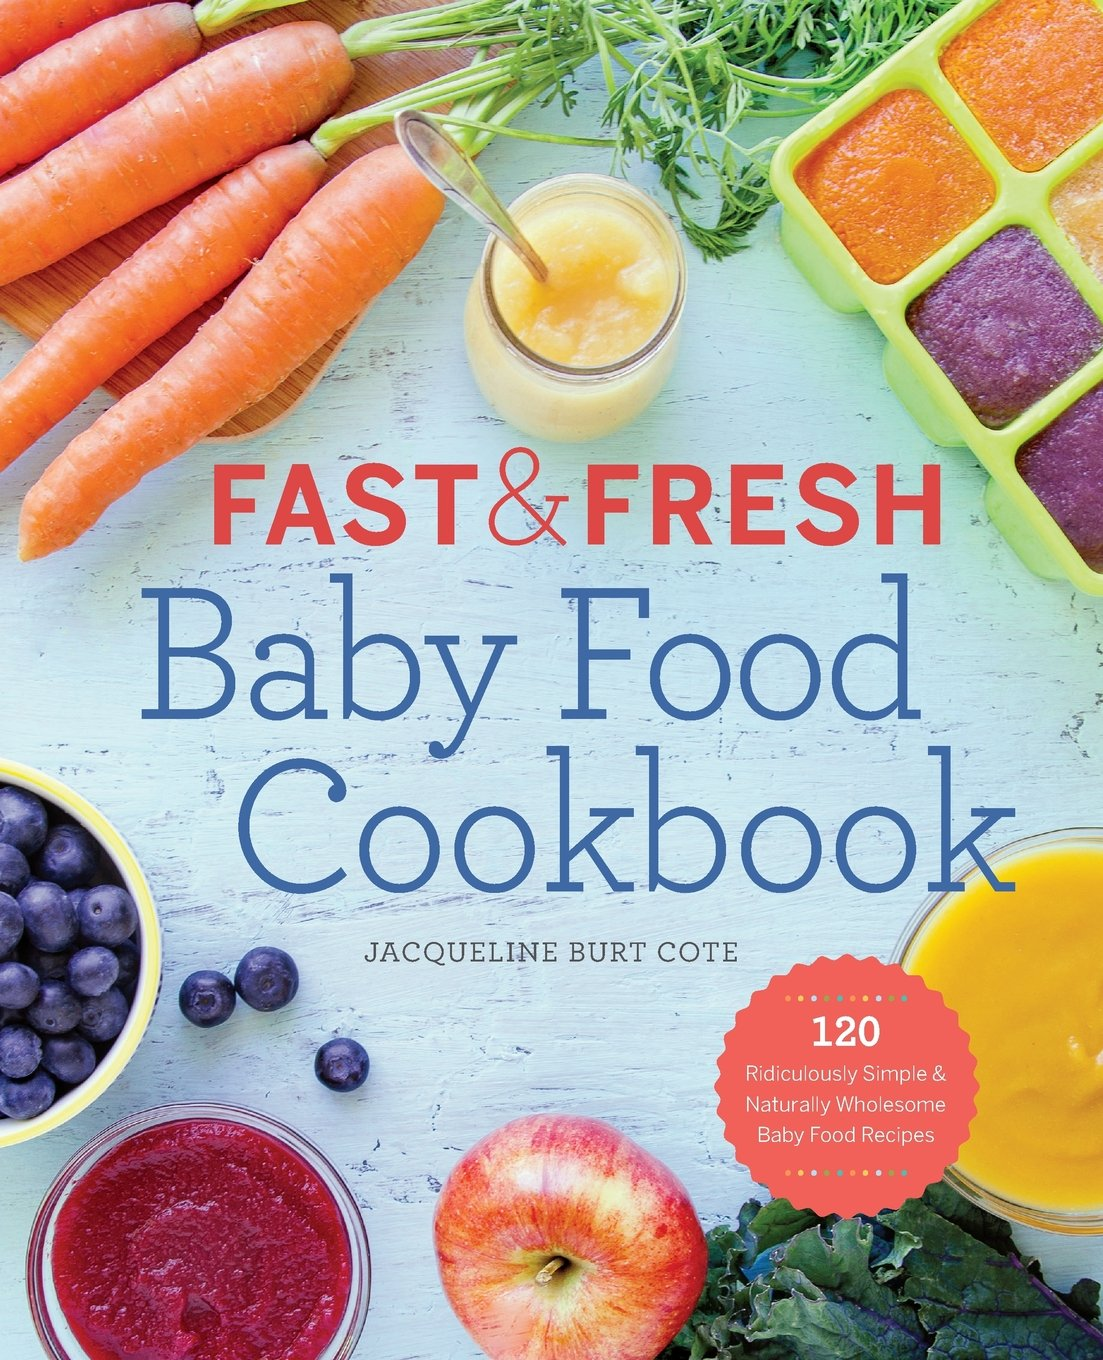 Baby food recipe book food fast fresh baby food cookbook 120 ridiculously simple and forumfinder Gallery